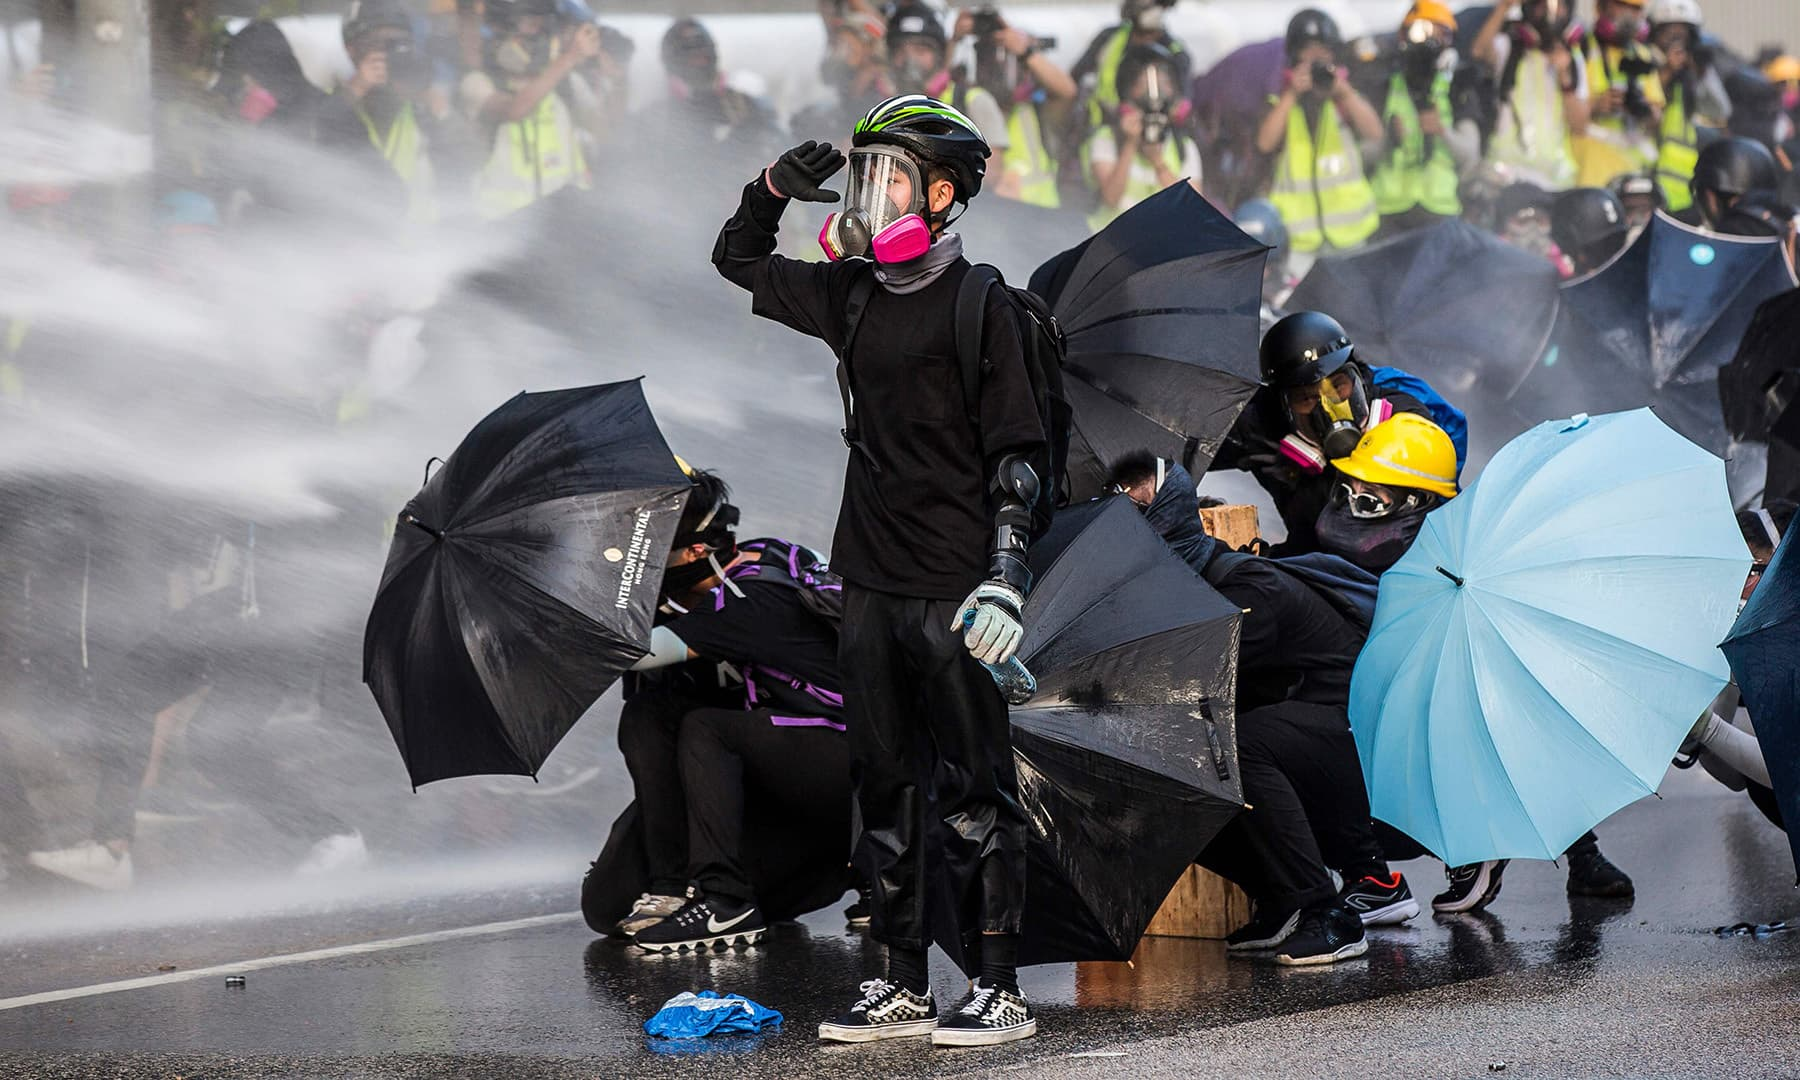 Pro-democracy protesters react as police fire water cannons outside the government headquarters in Hong Kong on September 15. — AFP